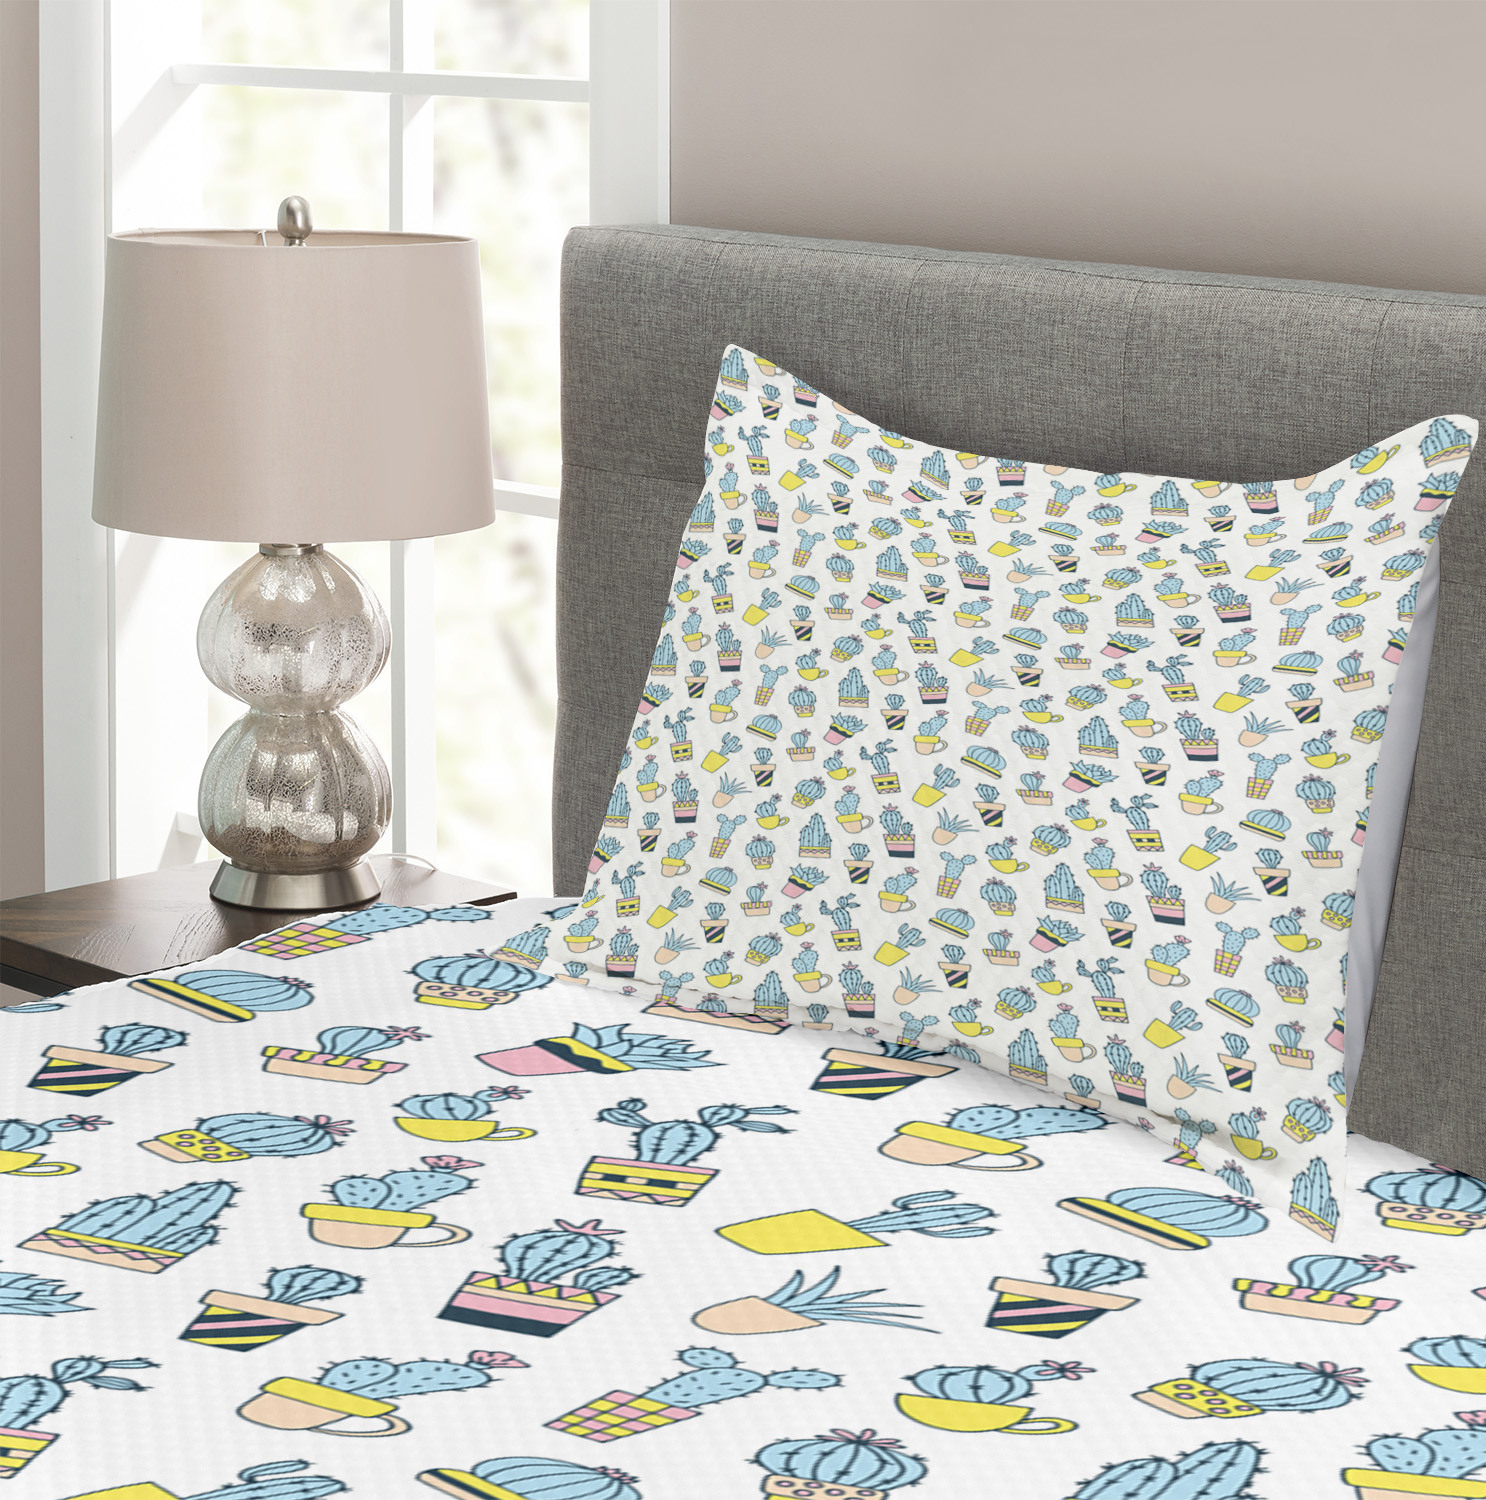 Cactus Quilted Bedspread Amp Pillow Shams Set Hand